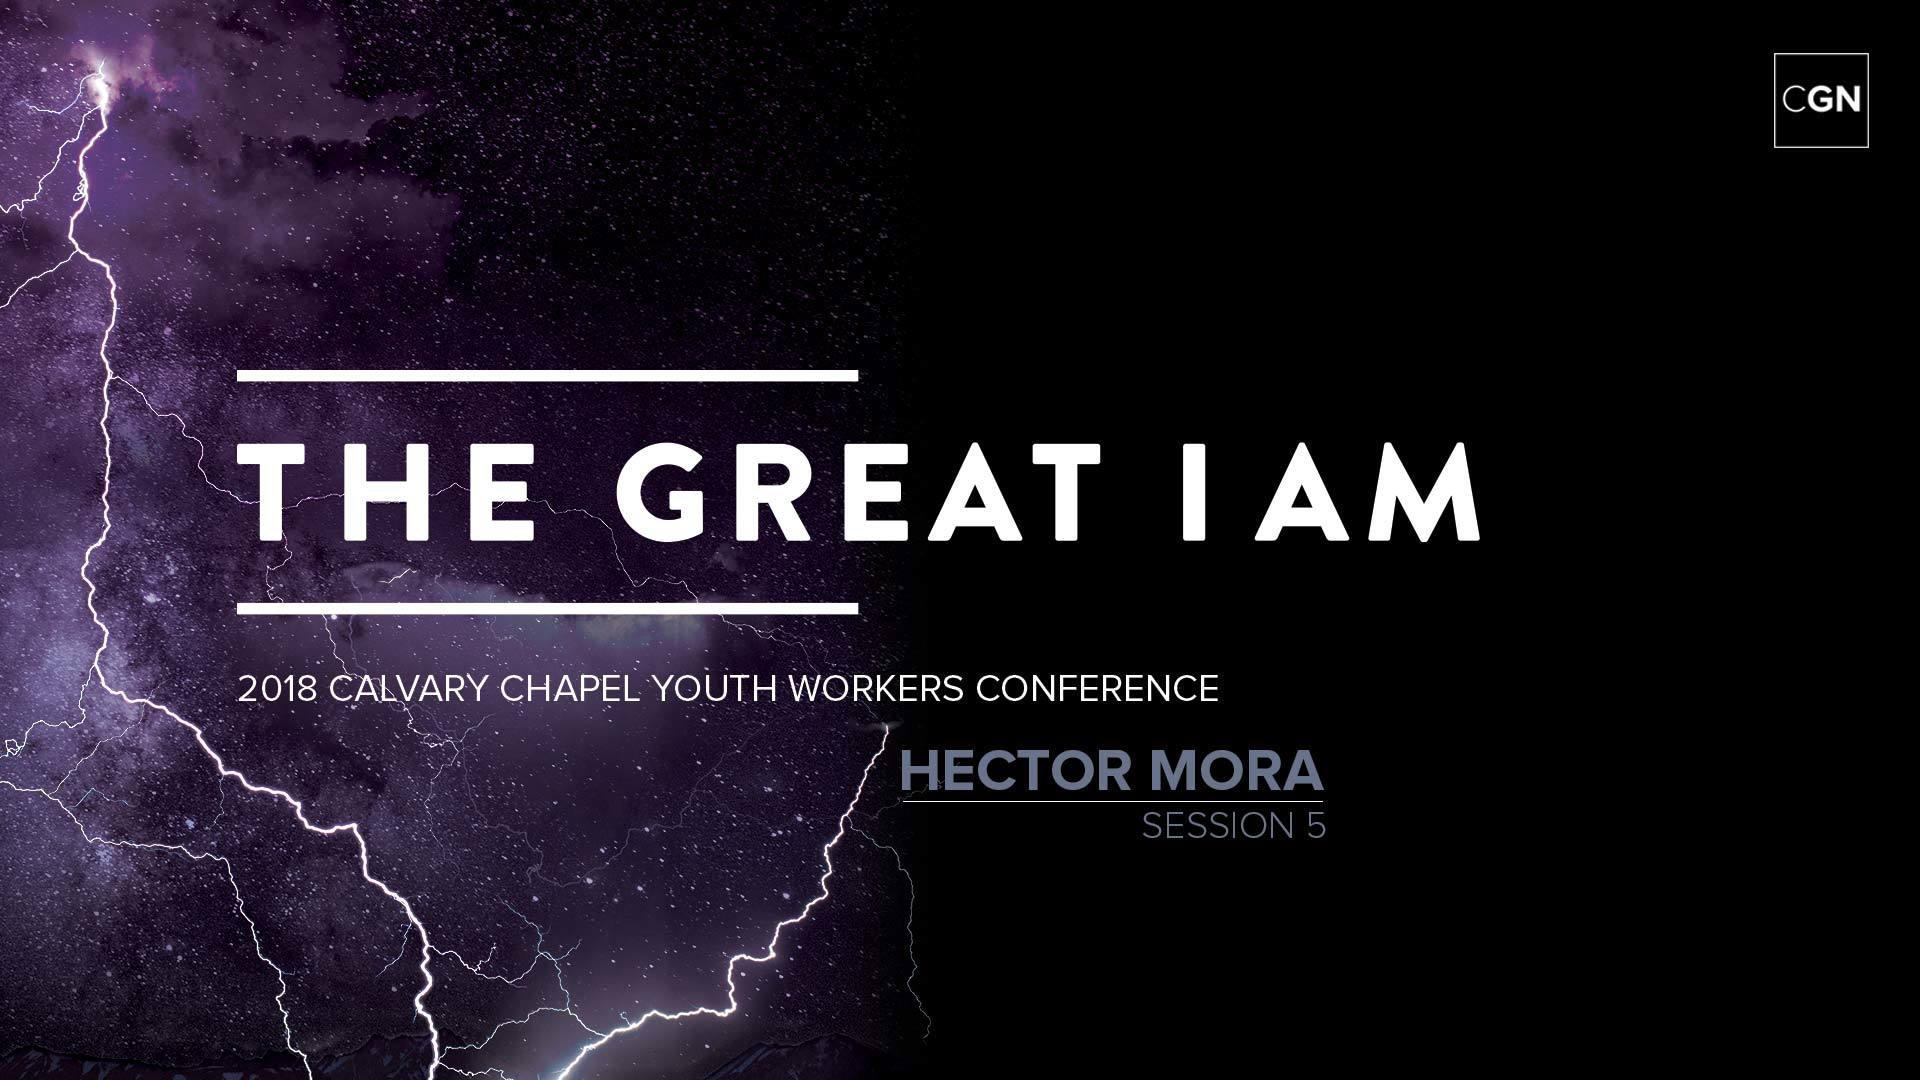 Hector Mora - Session 5